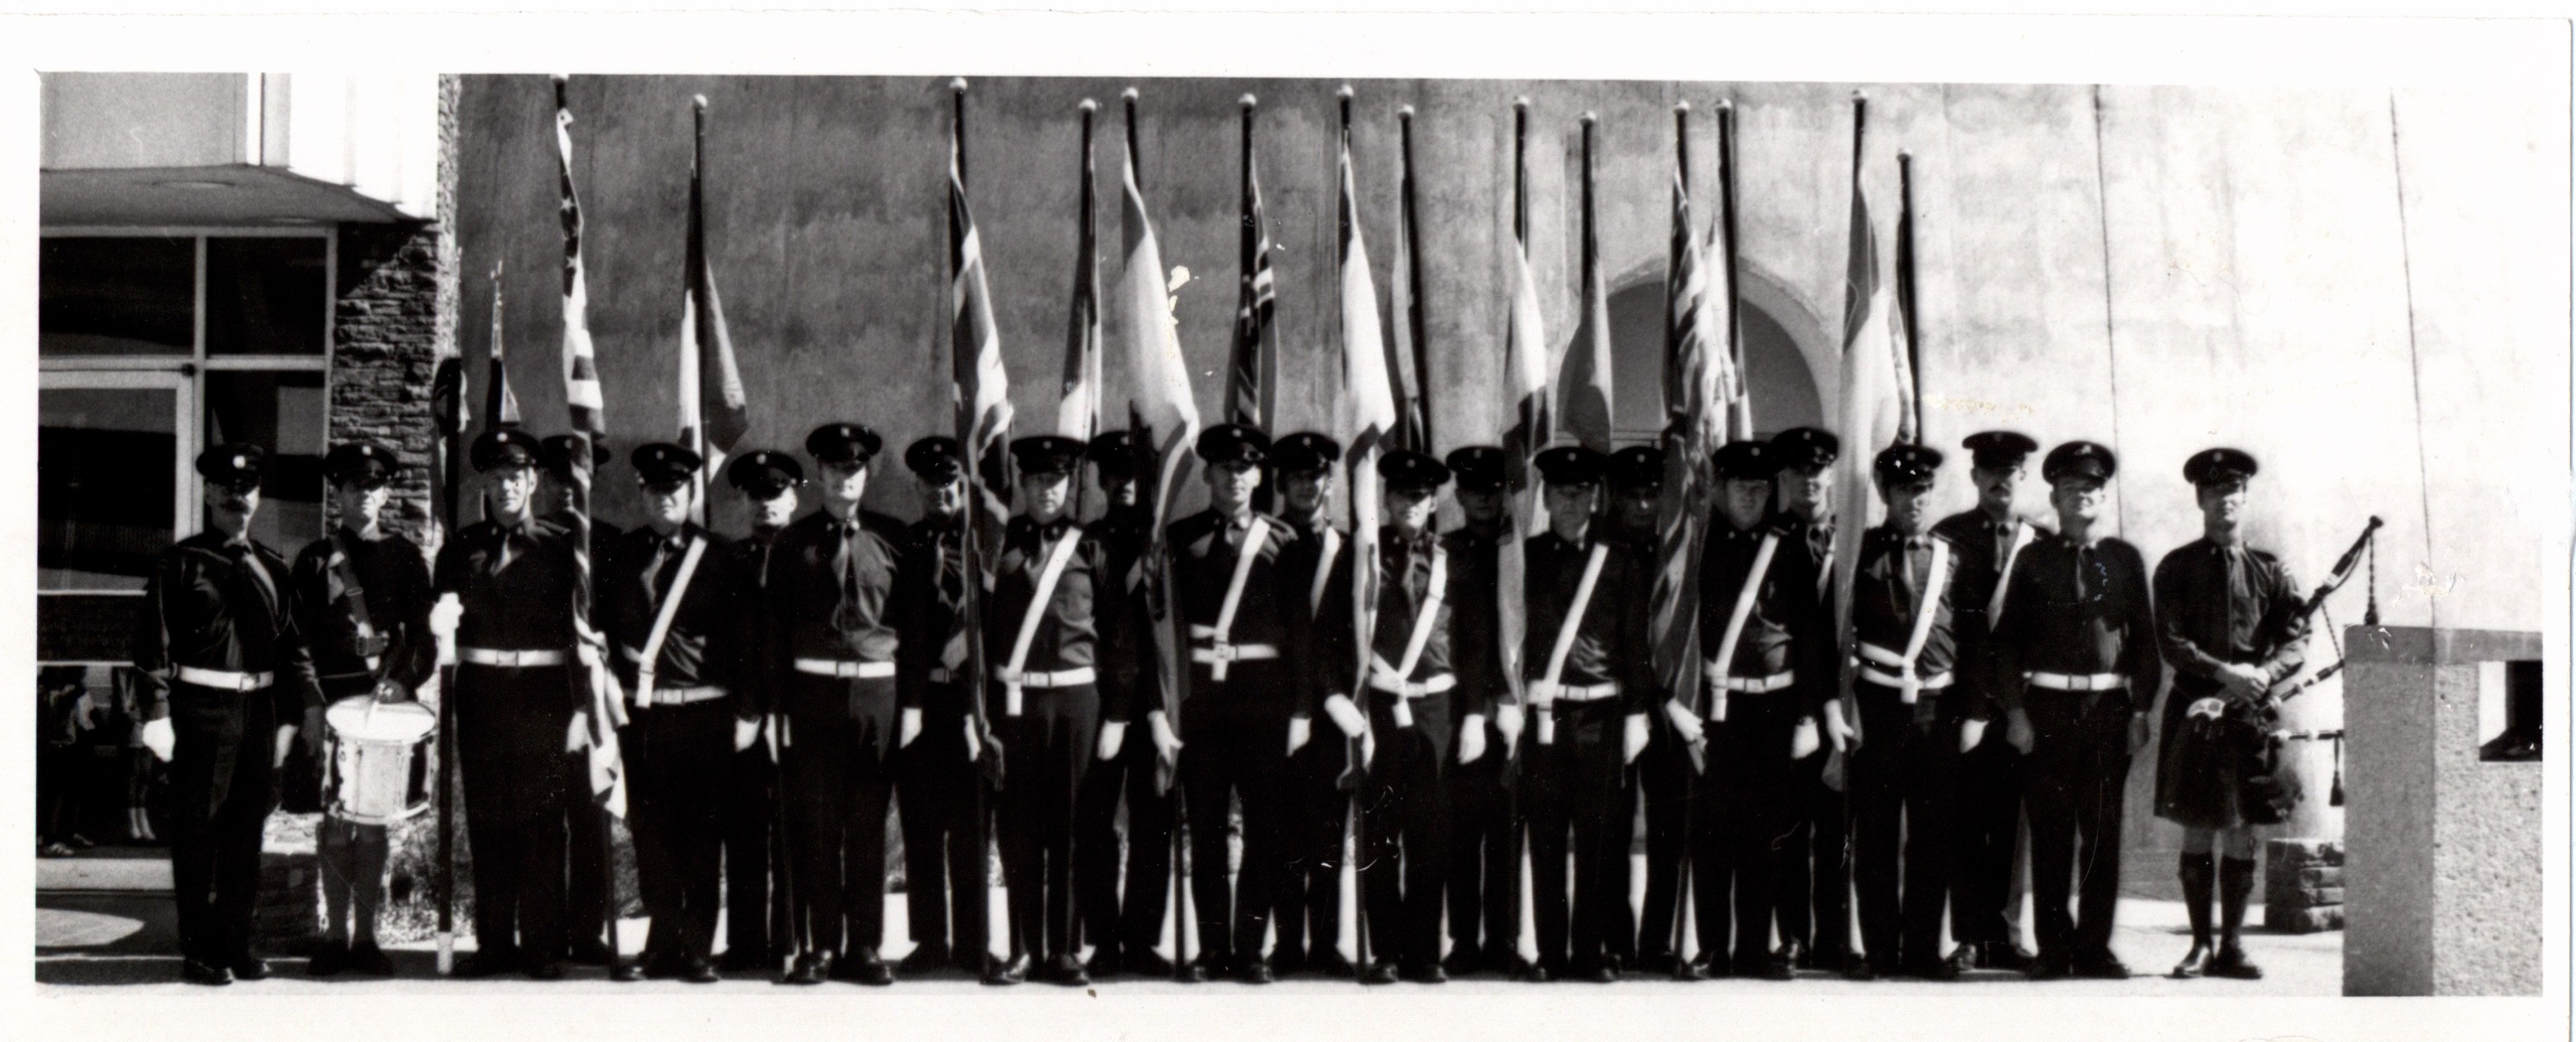 Black and white photo showing more than 20 men standing in a line at attention in full uniform at the base of the tower. Most carry flags. Men at either end are carrying pipes and drums